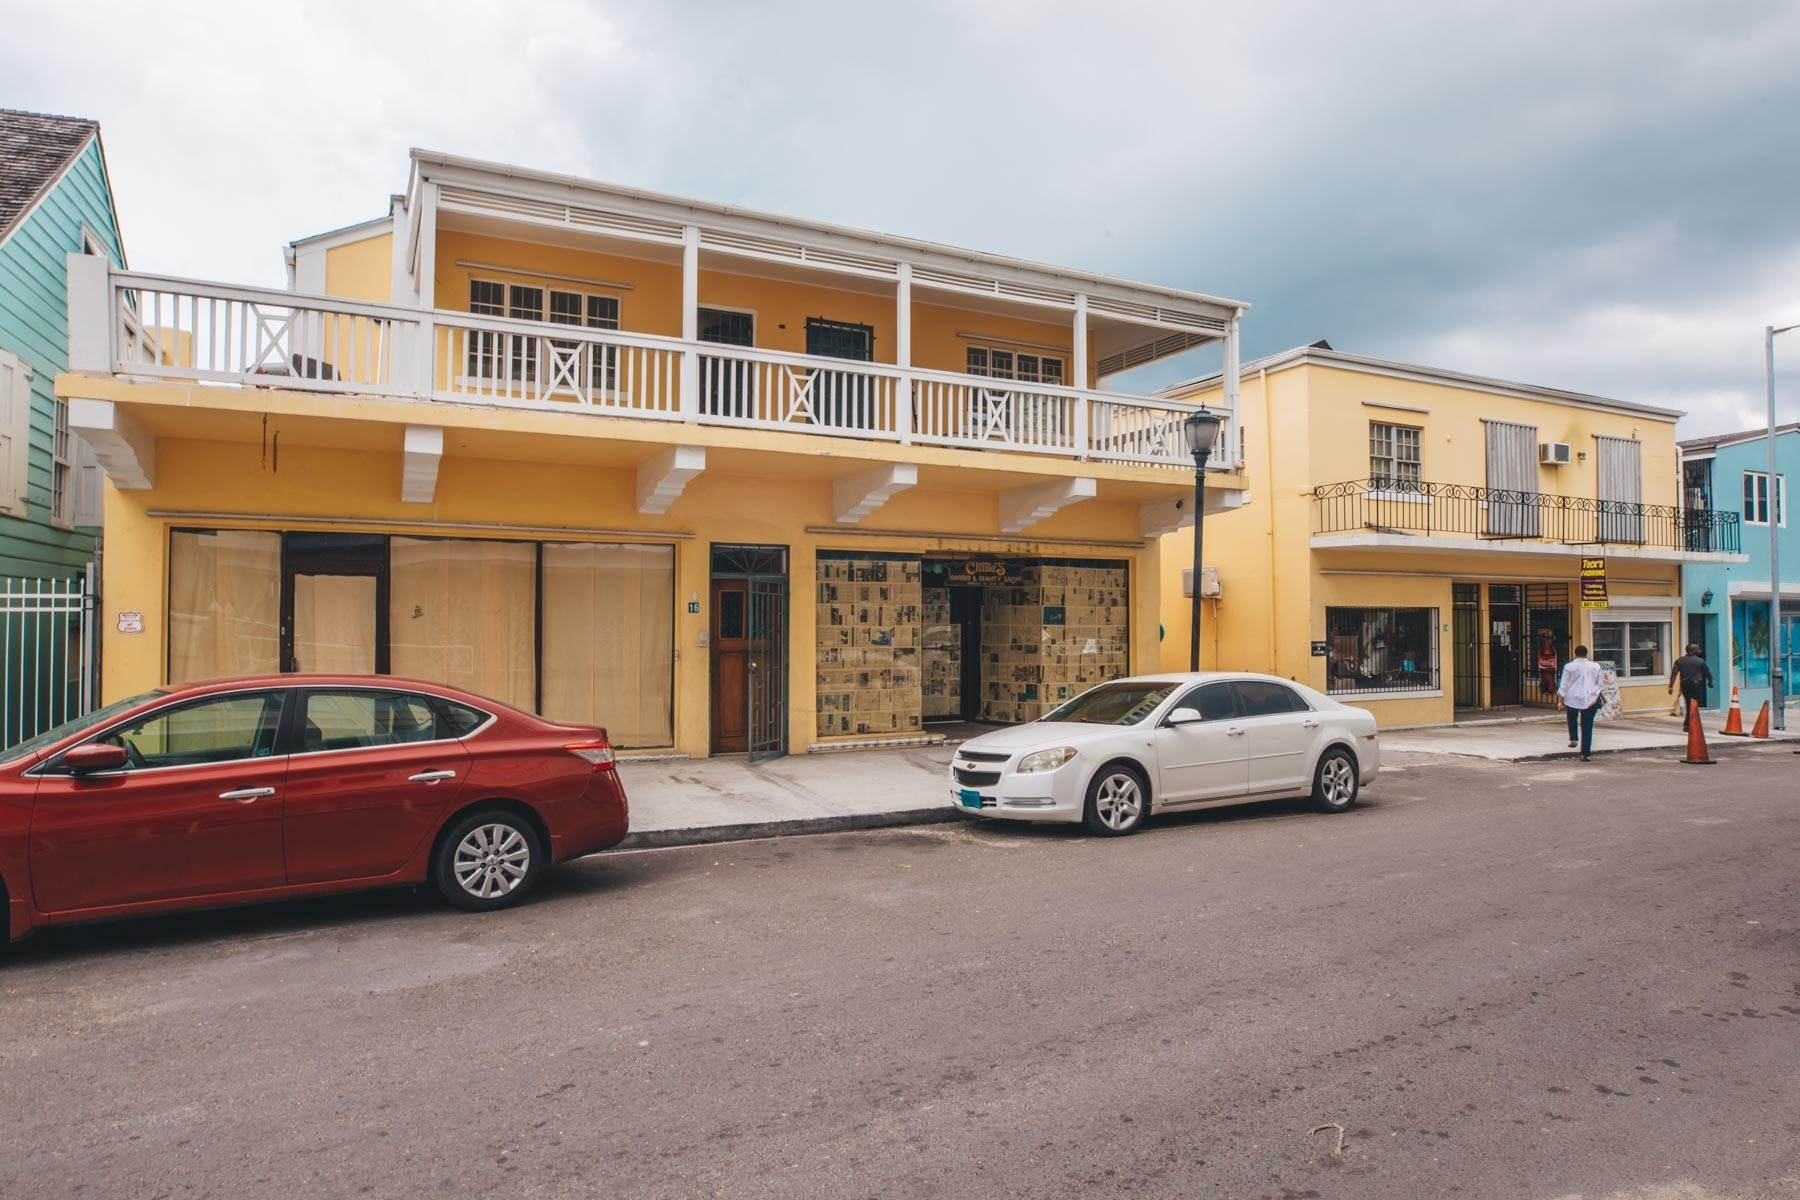 Commercial for Rent at Downtown Office Space With Parking Downtown, Nassau And Paradise Island, Bahamas